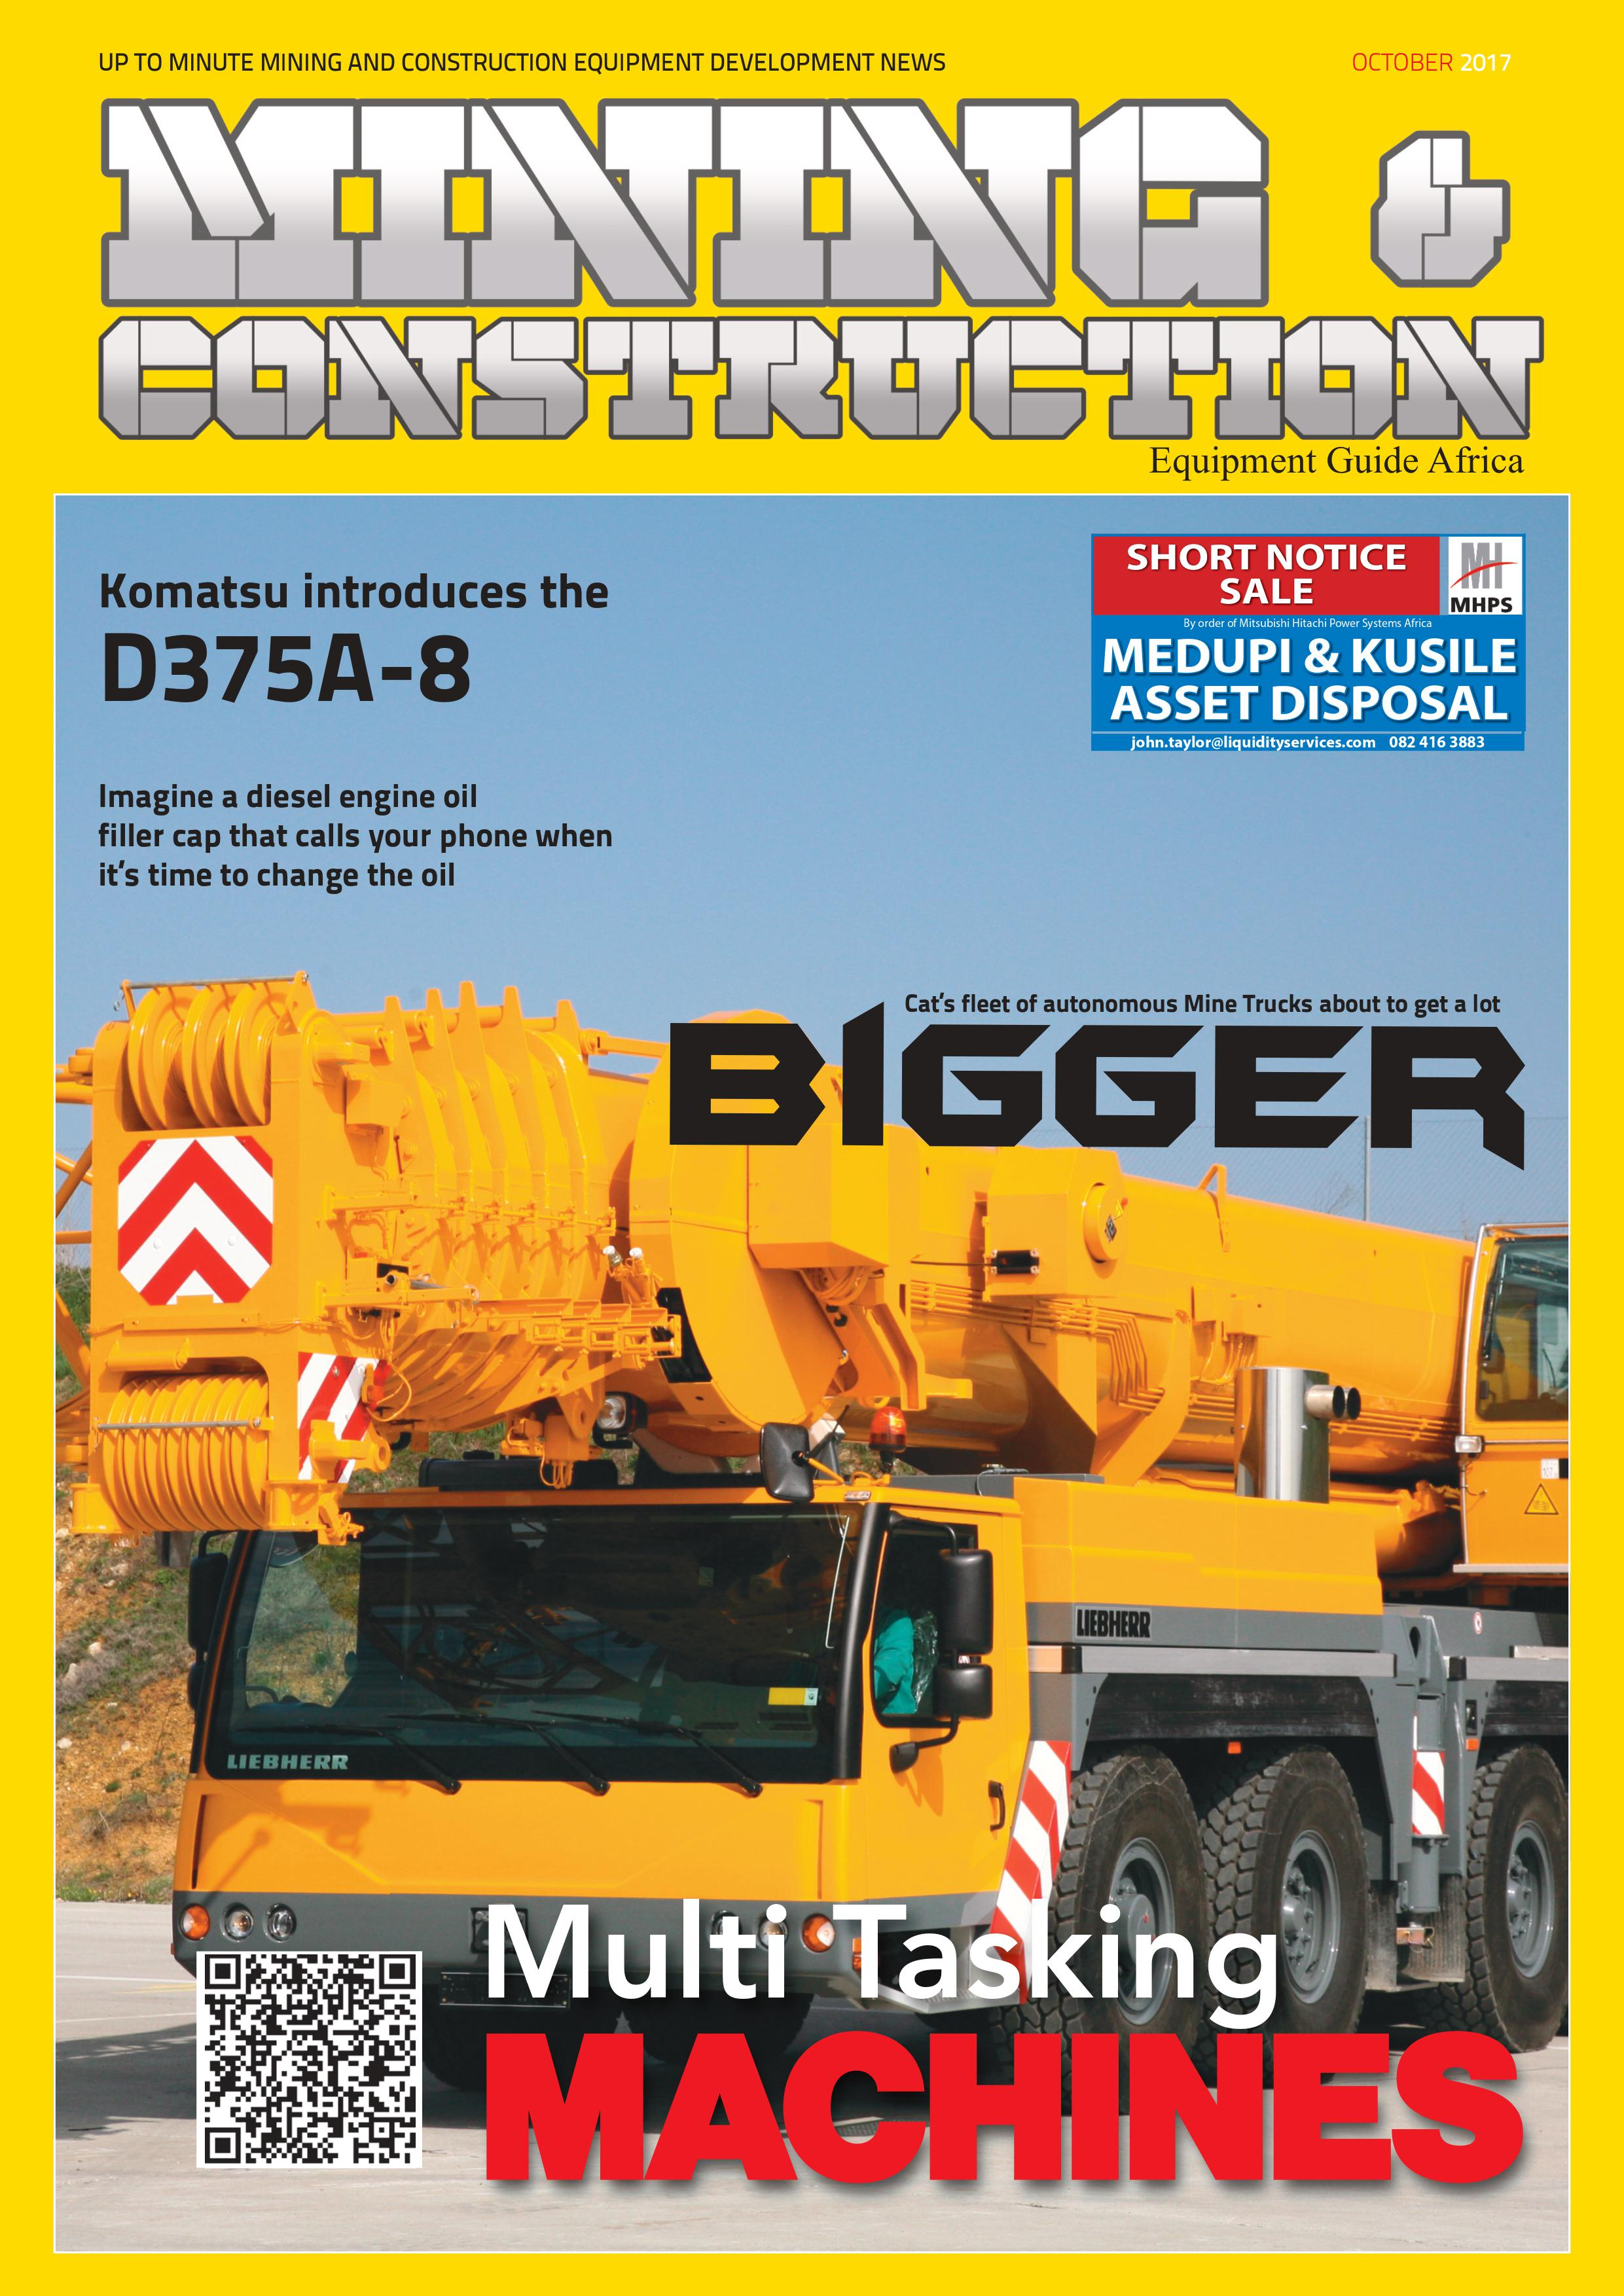 Up to Minute News in Mining & Construction Equipment for Africa